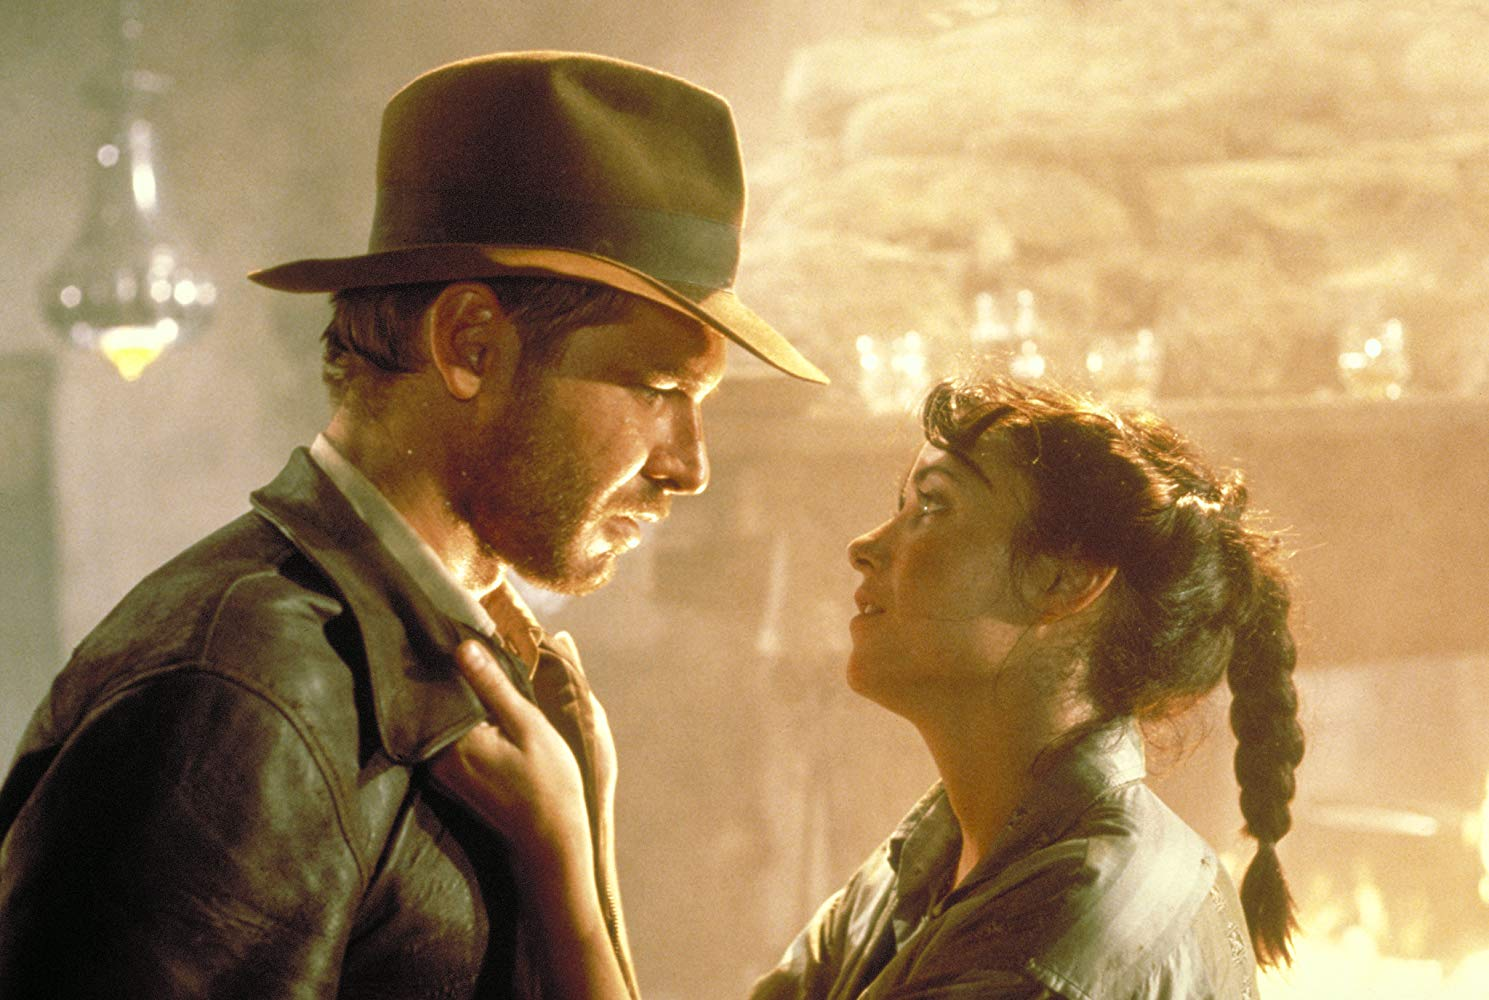 Indiana Jones (Harrison Ford) and Marion Ravenwood (Karen Allen) in Raiders of the Lost Ark (1981)